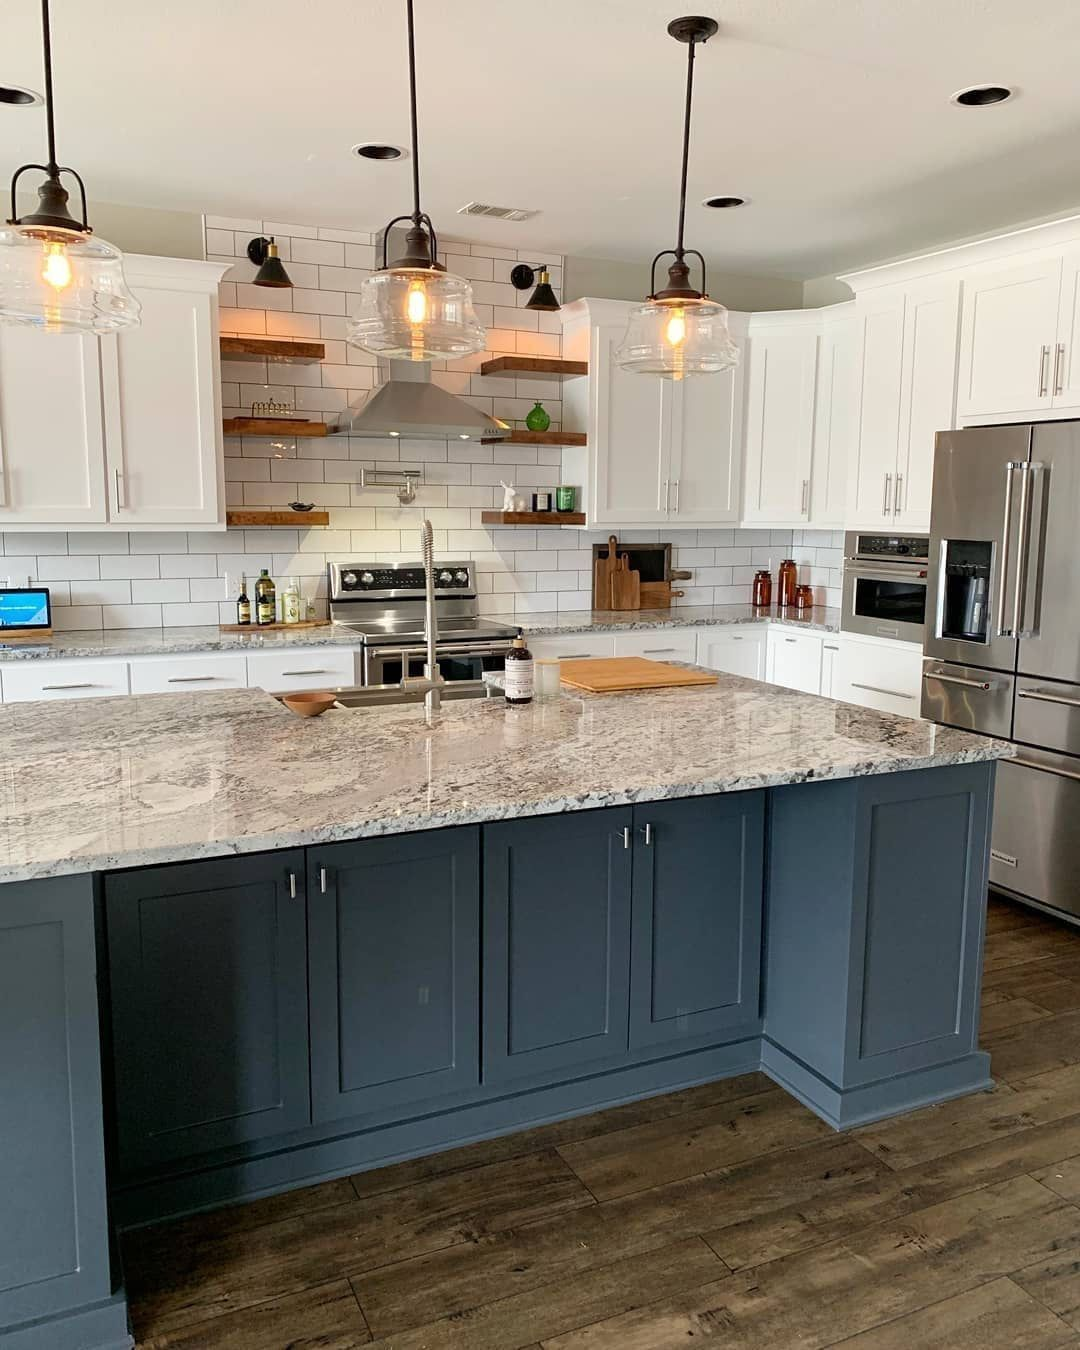 Stunning Kitchen With Open Shelves By Brentwood Cabinets Llc Brentwoodcabinets Instagram Photos And Videos Kitchen Beautiful Kitchens Home Decor